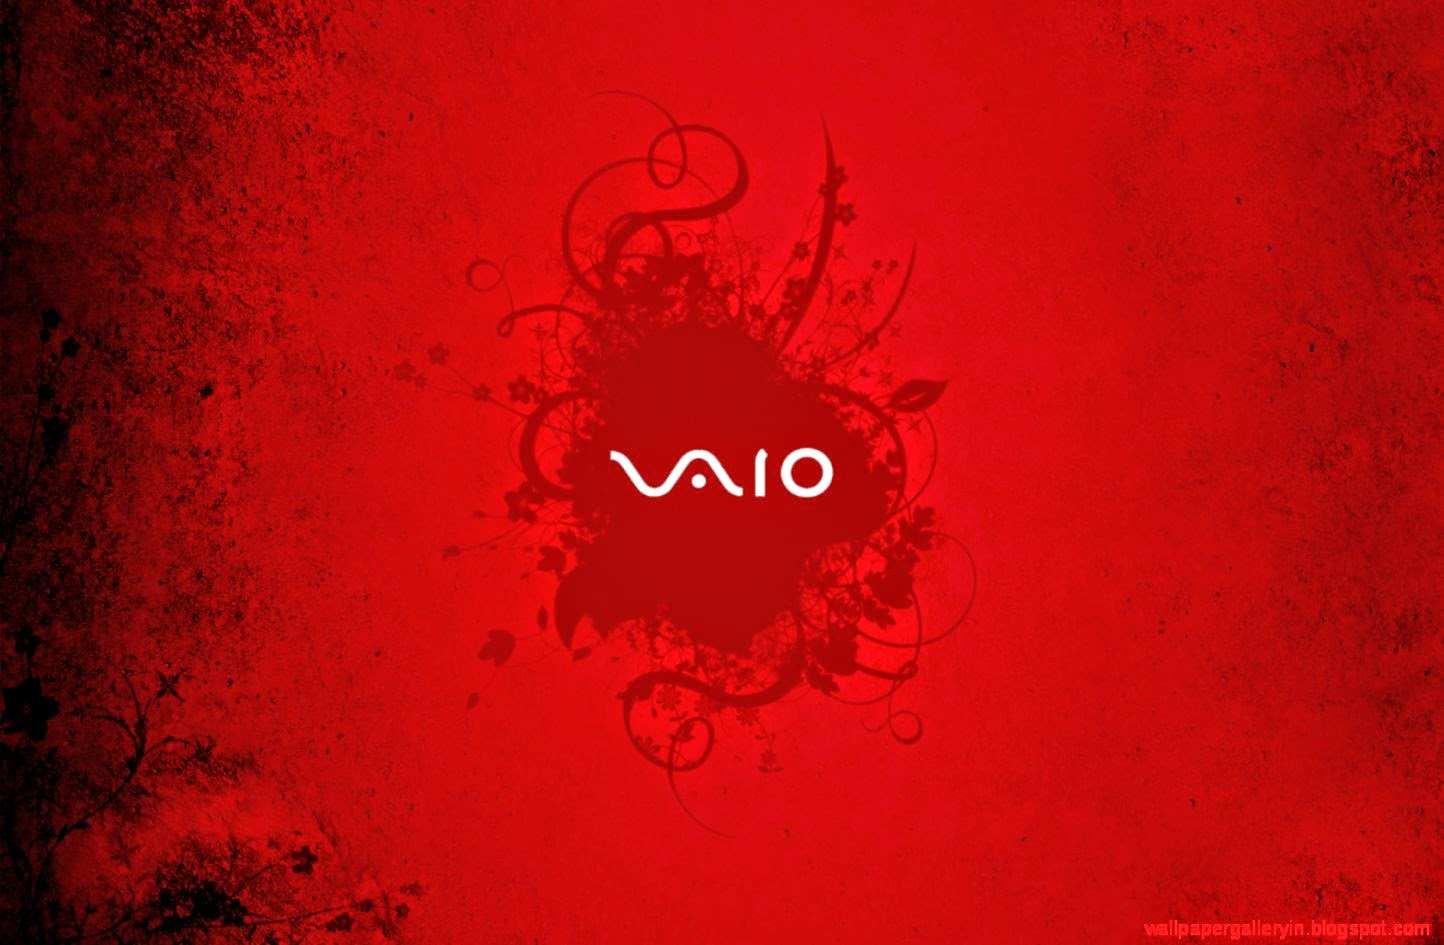 vaio red wallpaper by - photo #11